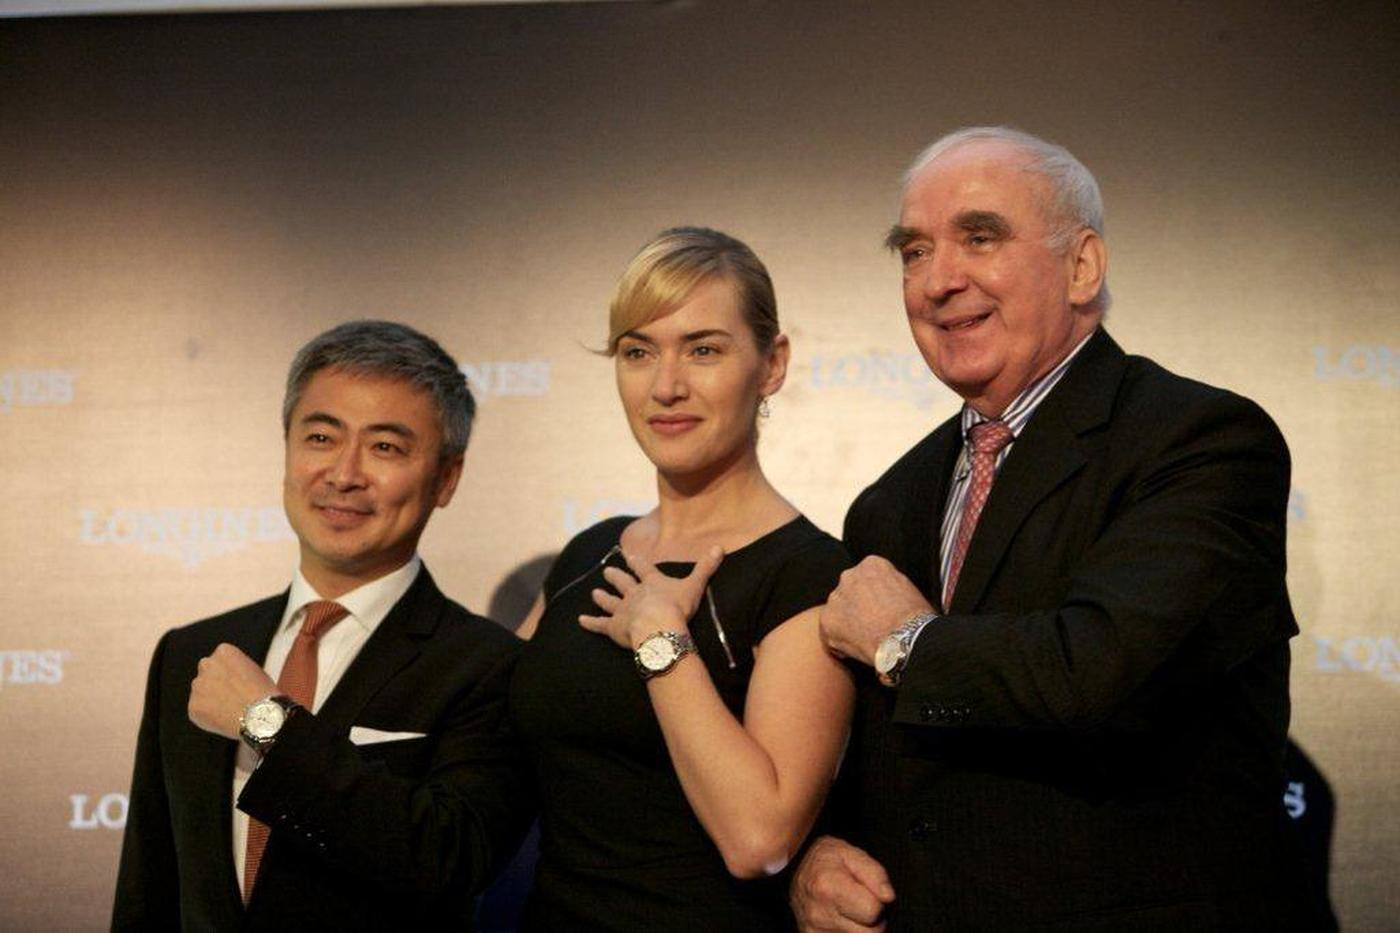 Longines Corporate Event: Kate Winslet reveals the new Longines Saint-Imier Collection in Shanghai 17